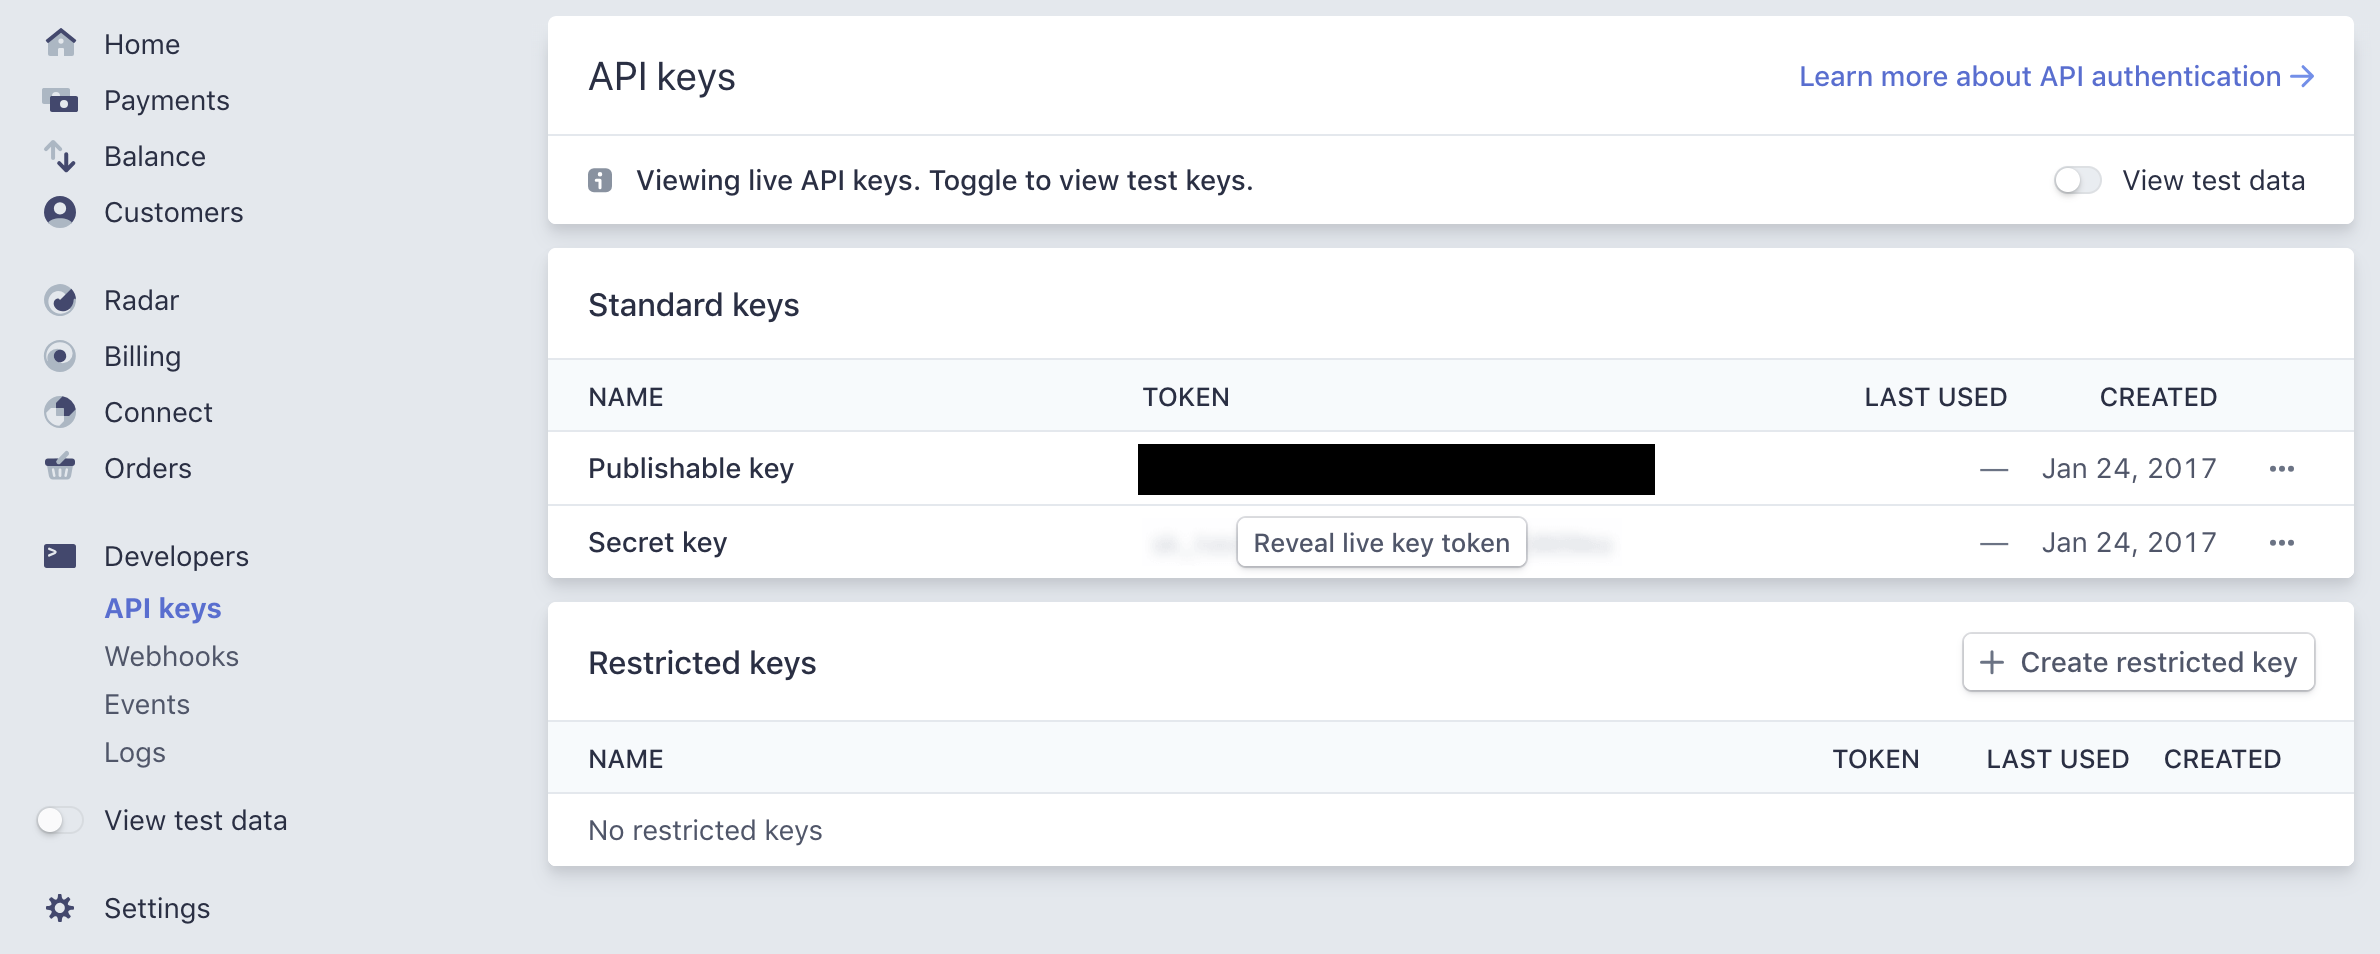 API keys section on the Stripe dashbaord